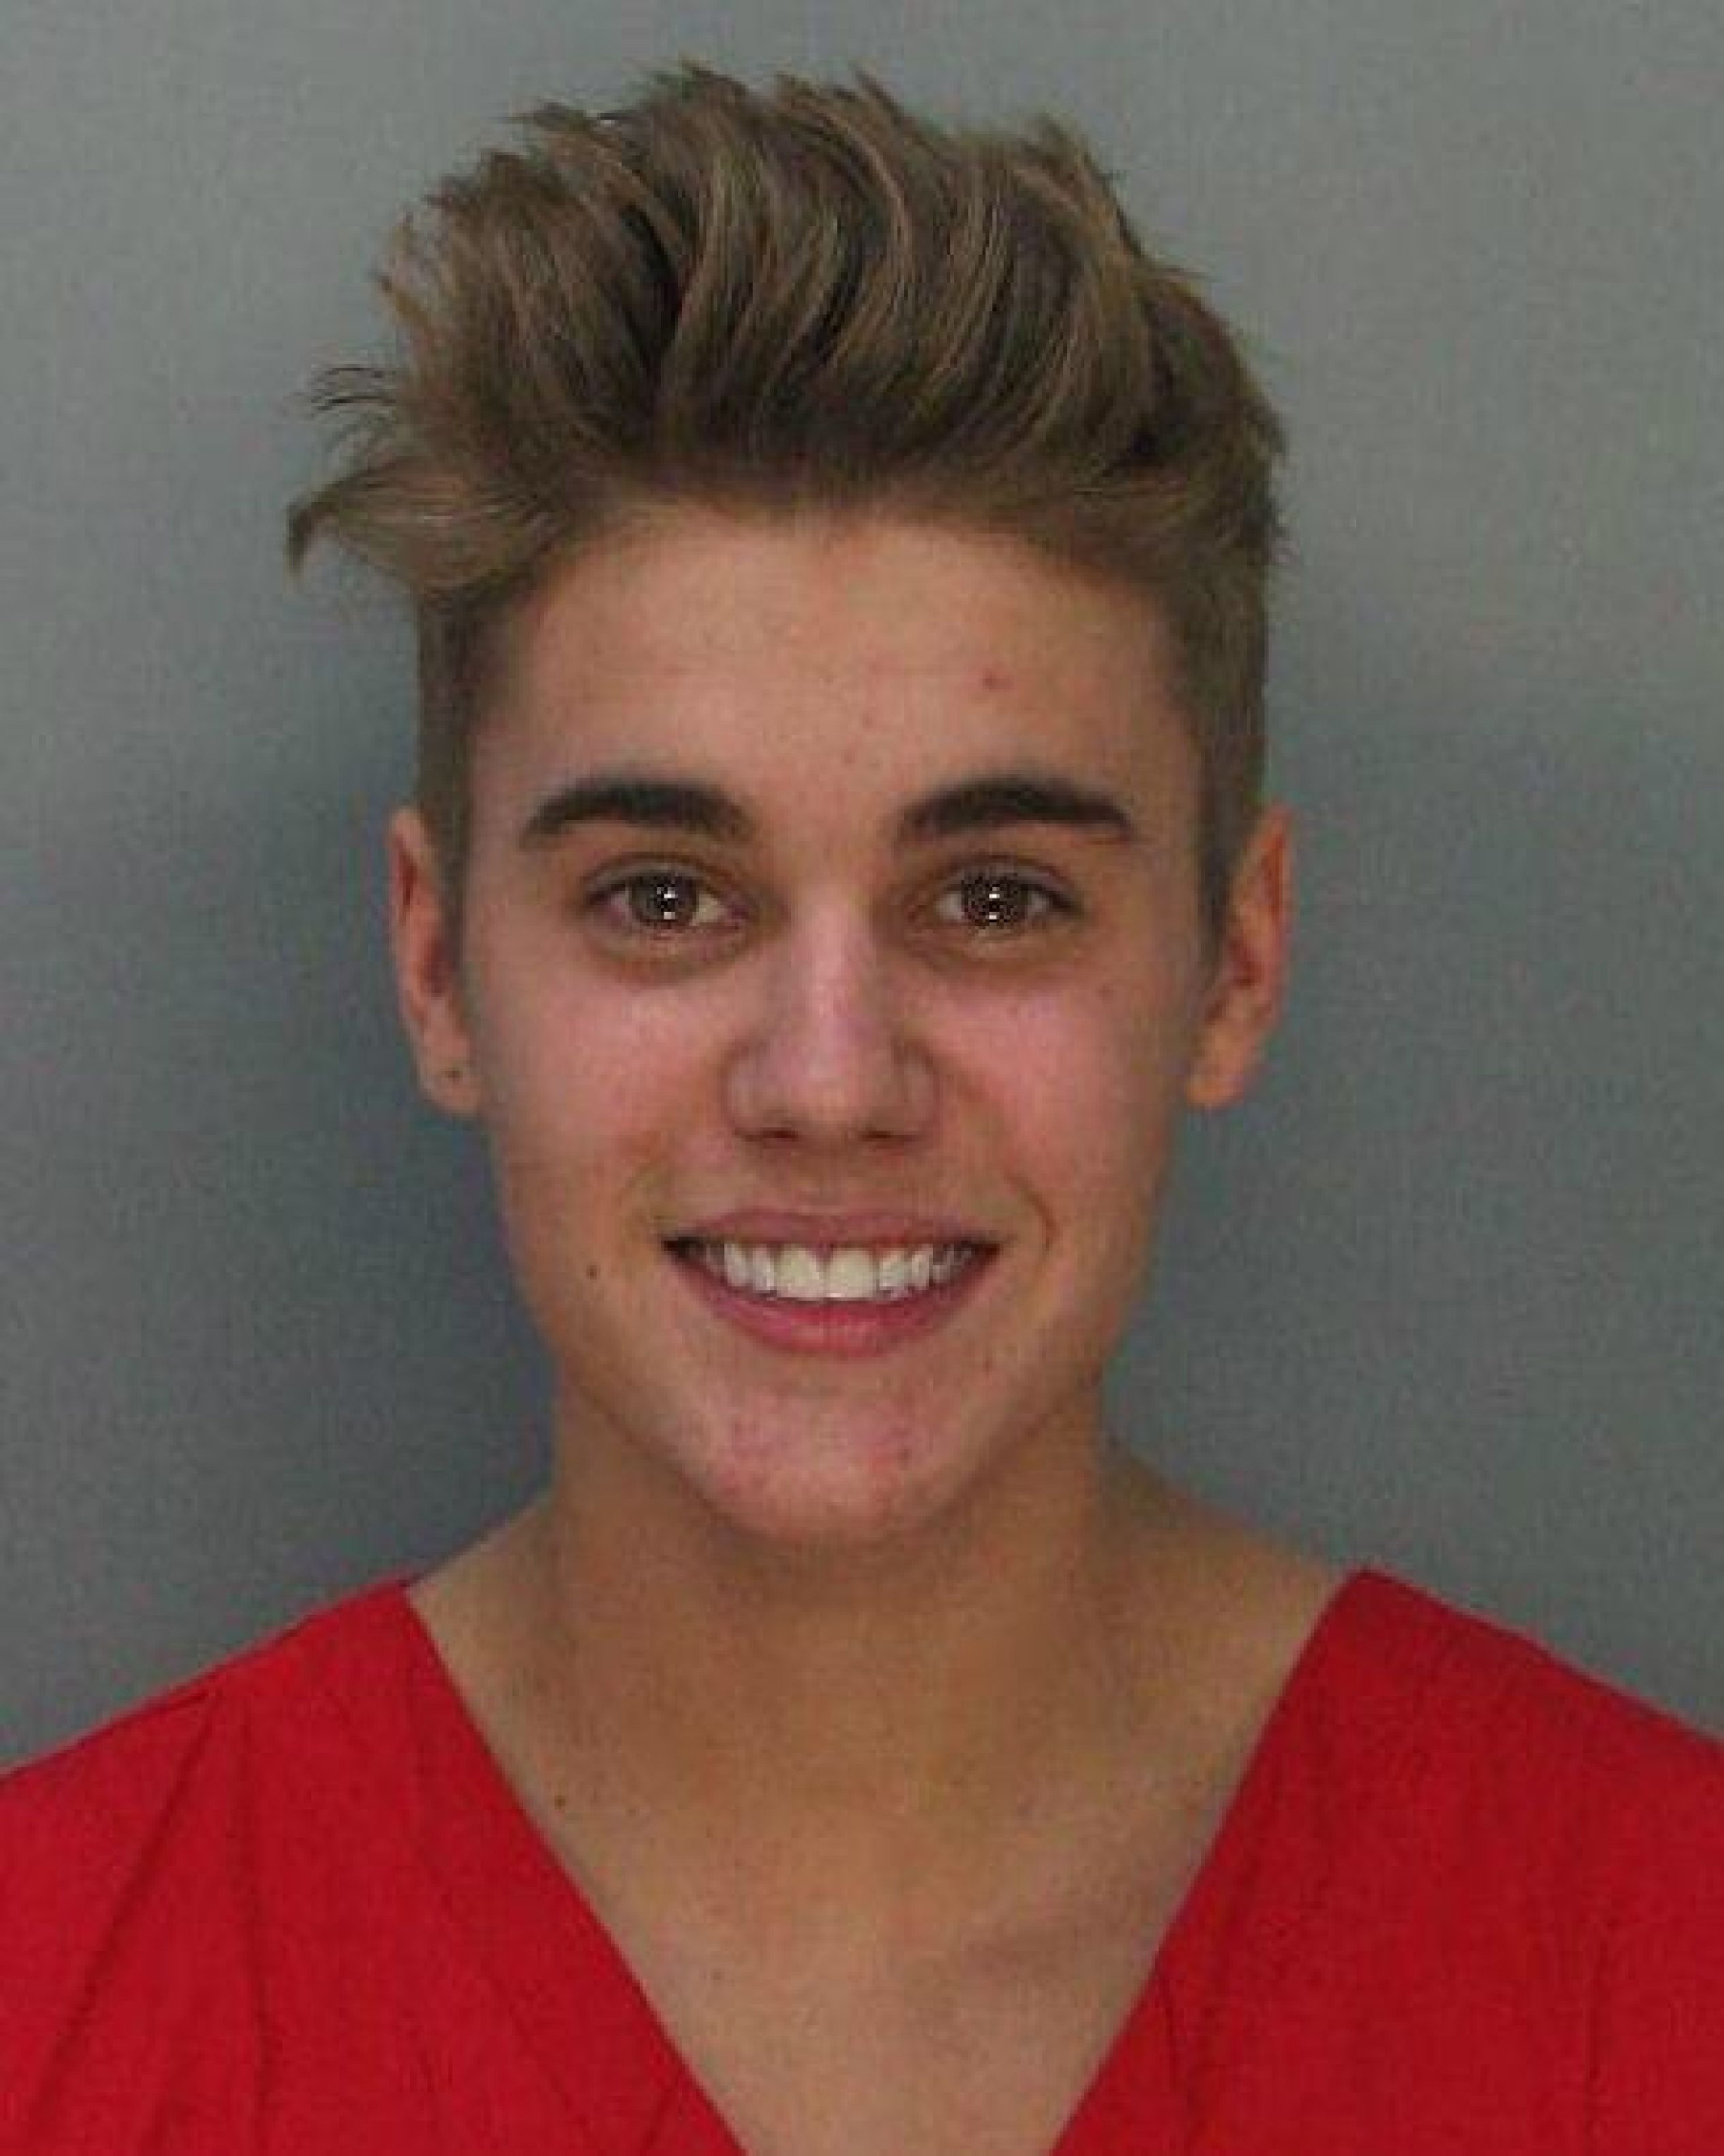 Justin Bieber's Arrest Report: 'I Ain't Got No F—ing Weapons!'